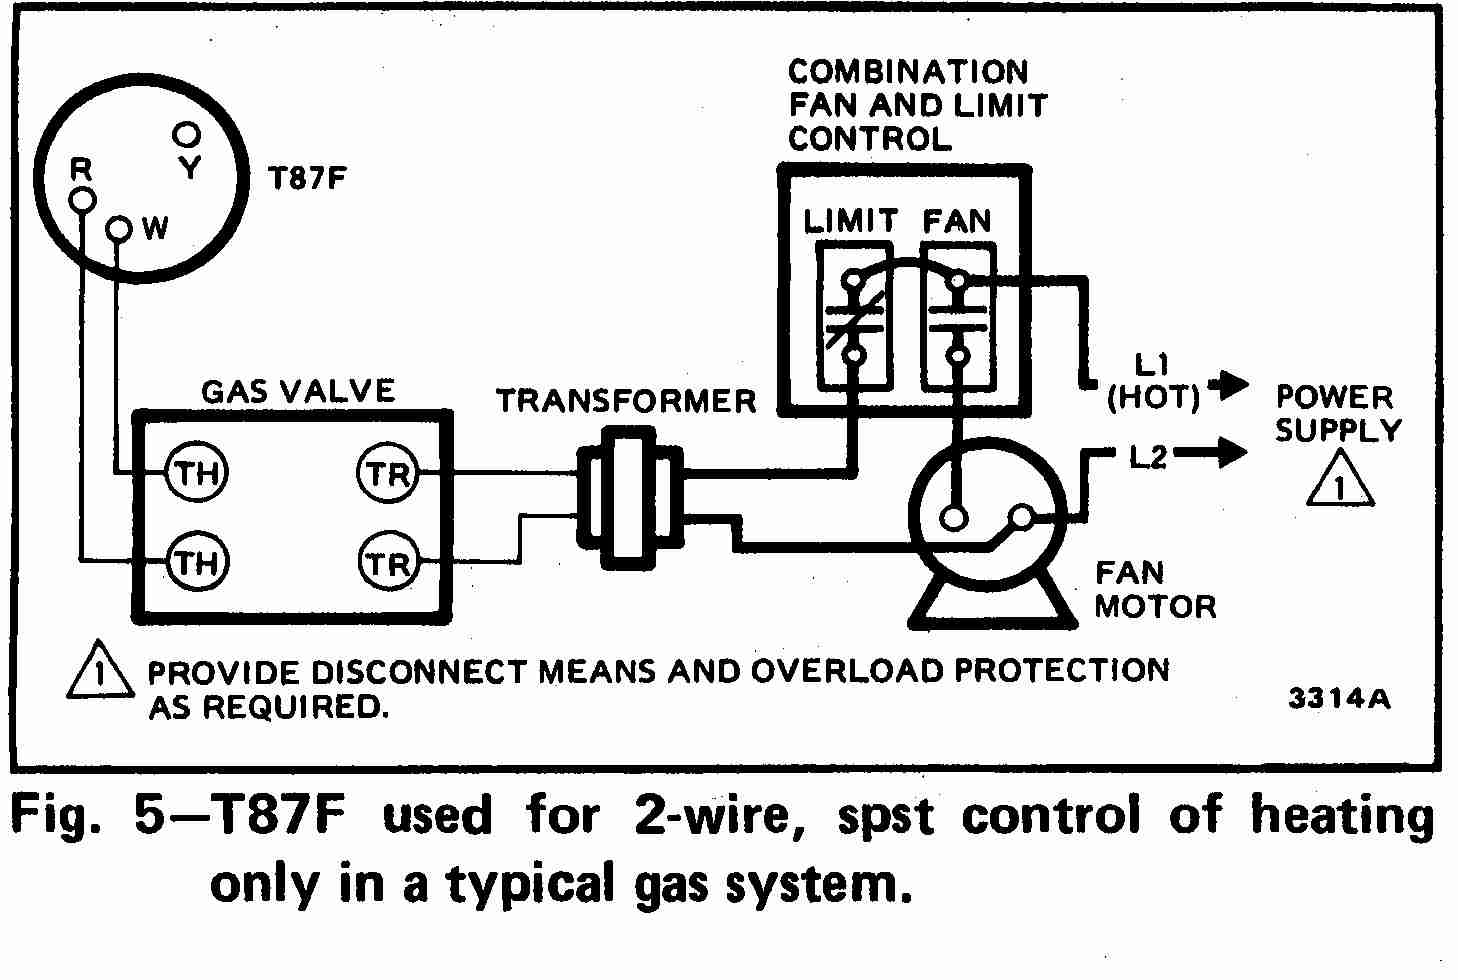 TT_T87F_0002_2Wg_DJF zone valve wiring installation & instructions guide to heating thermostat wiring diagram at soozxer.org